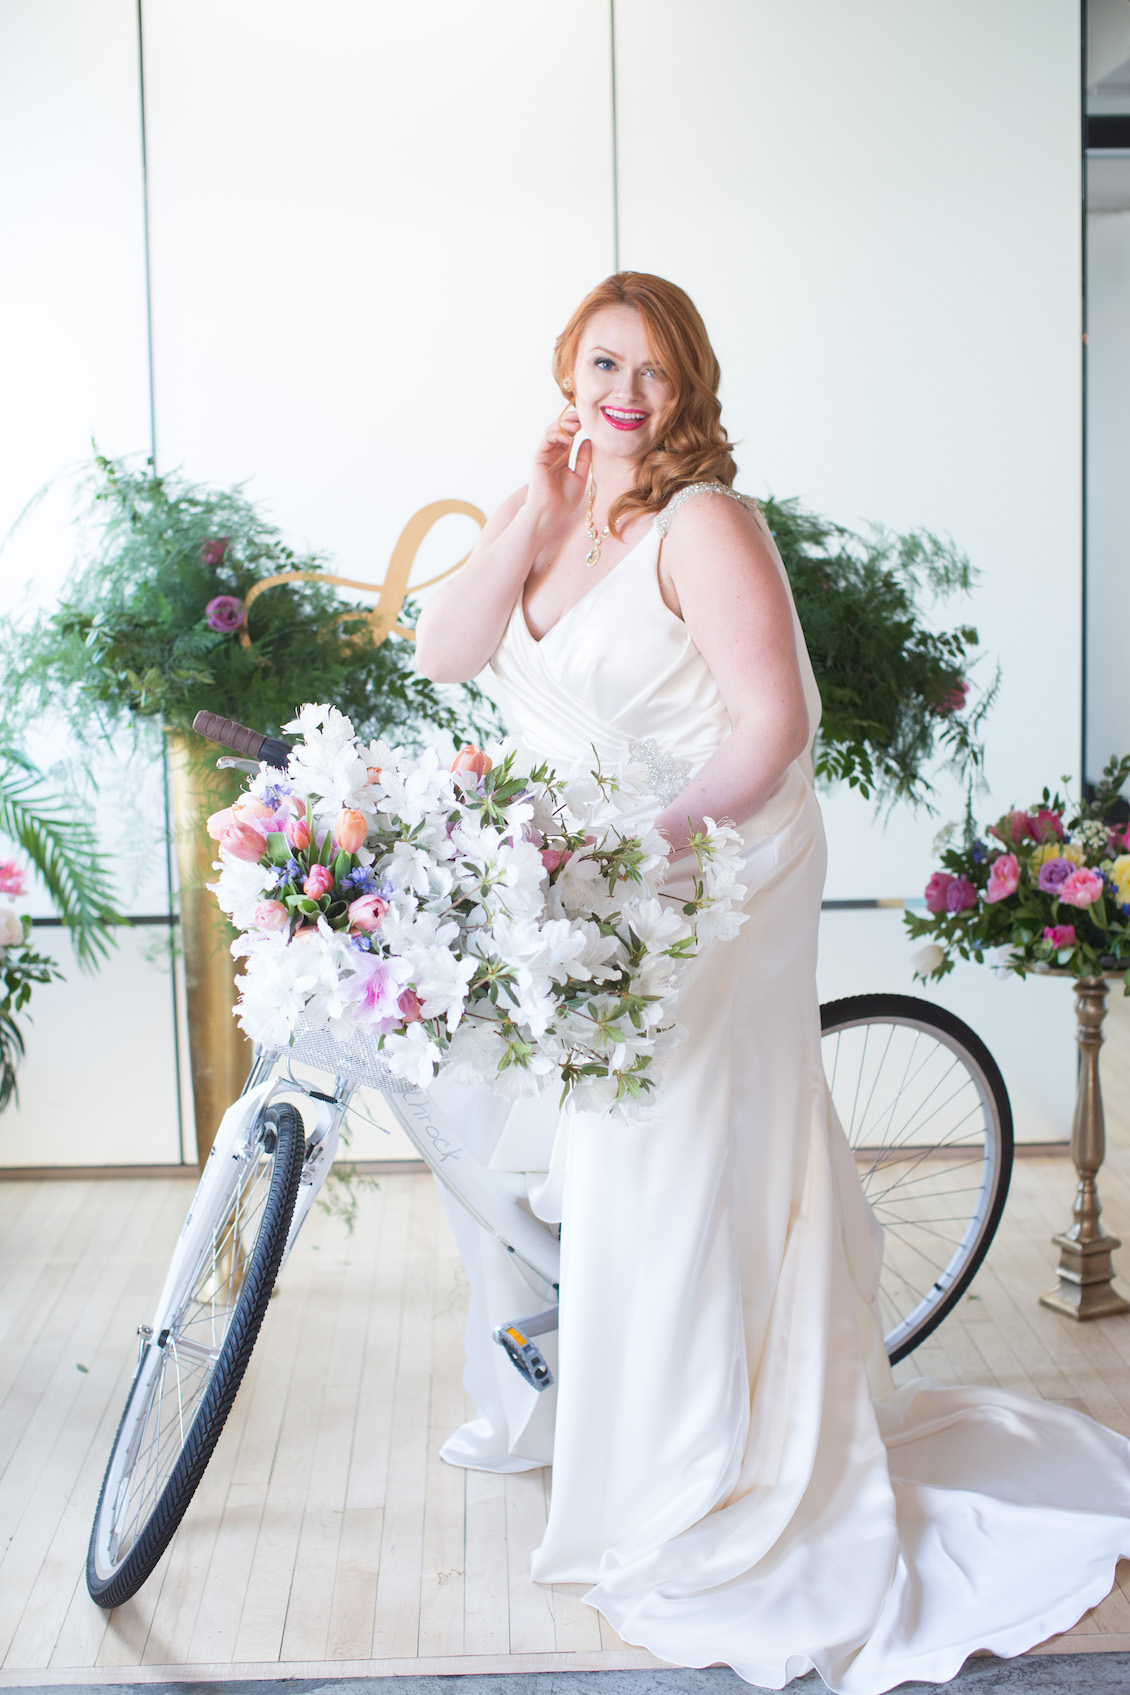 A Bride and her Decorated Bike - the perfect wedding decor accent / Florals by EightTreeStreet / Photography by Amy Nicole